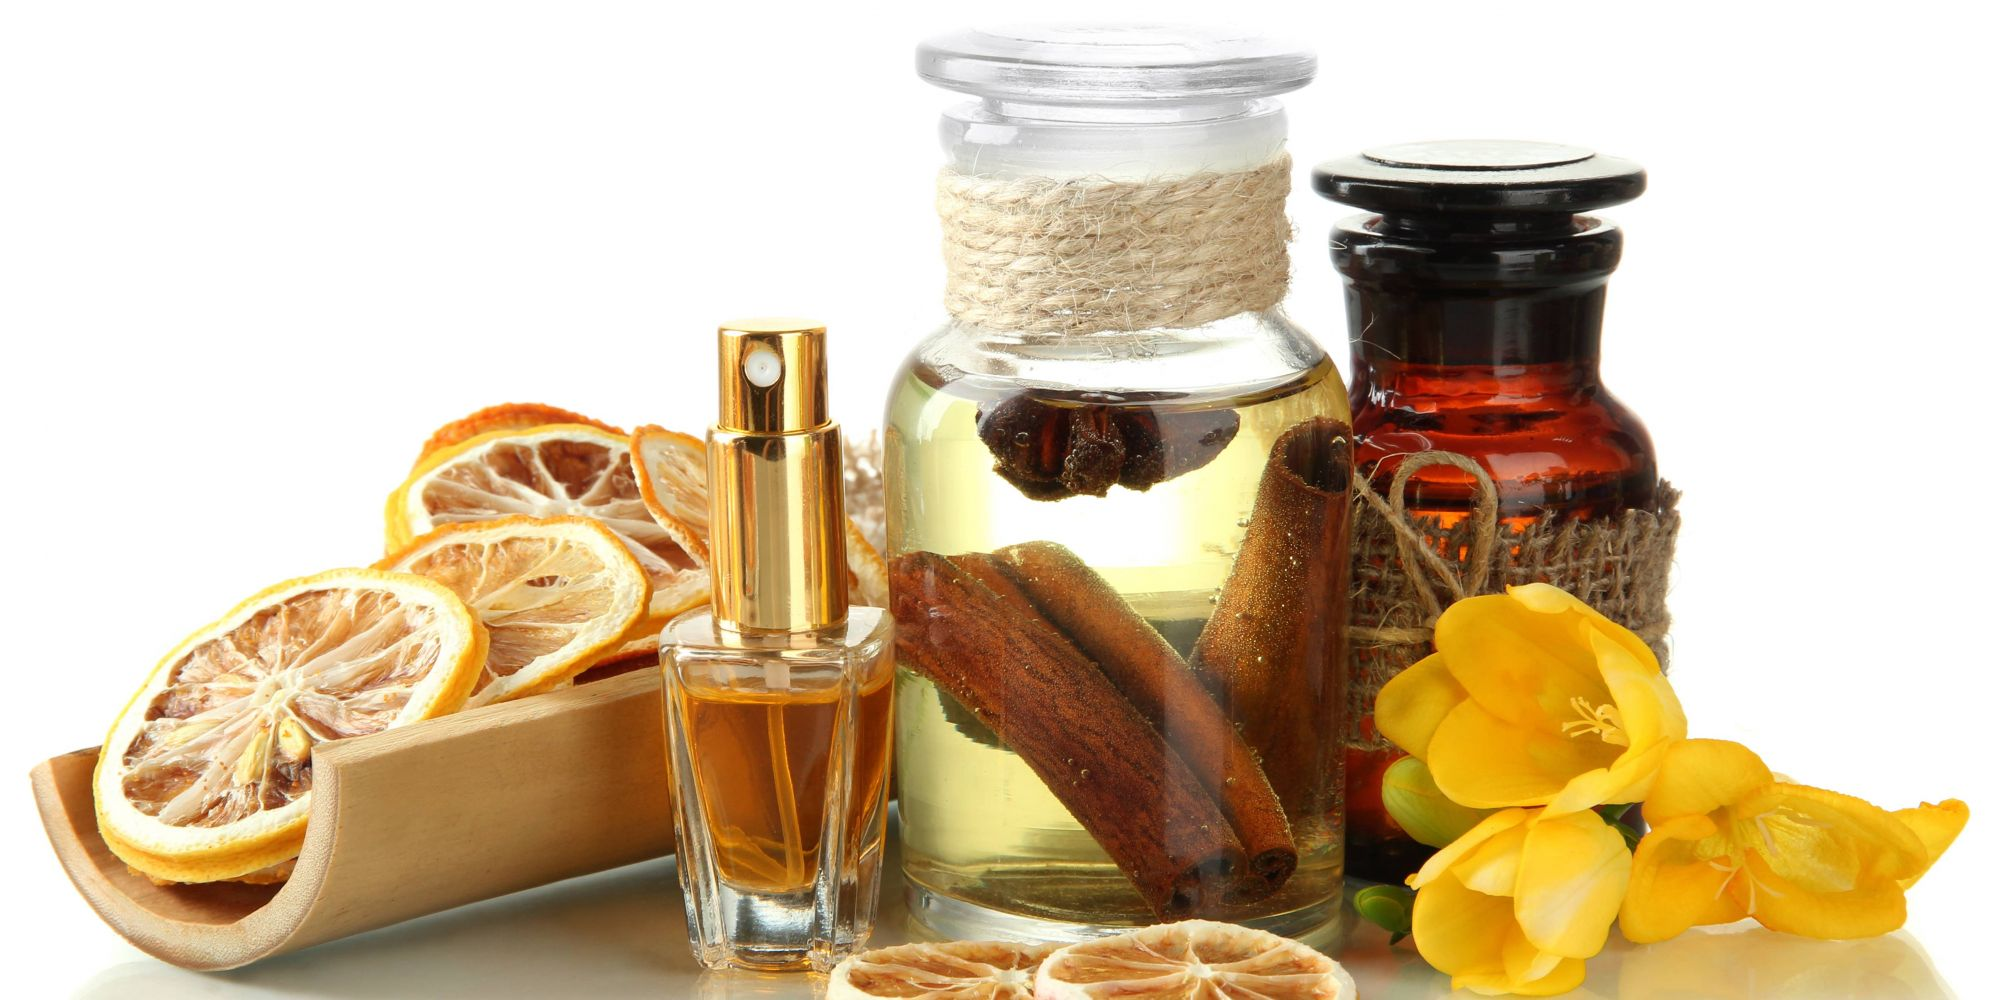 Is There Room For Synthetics In The Natural Perfume Segment?